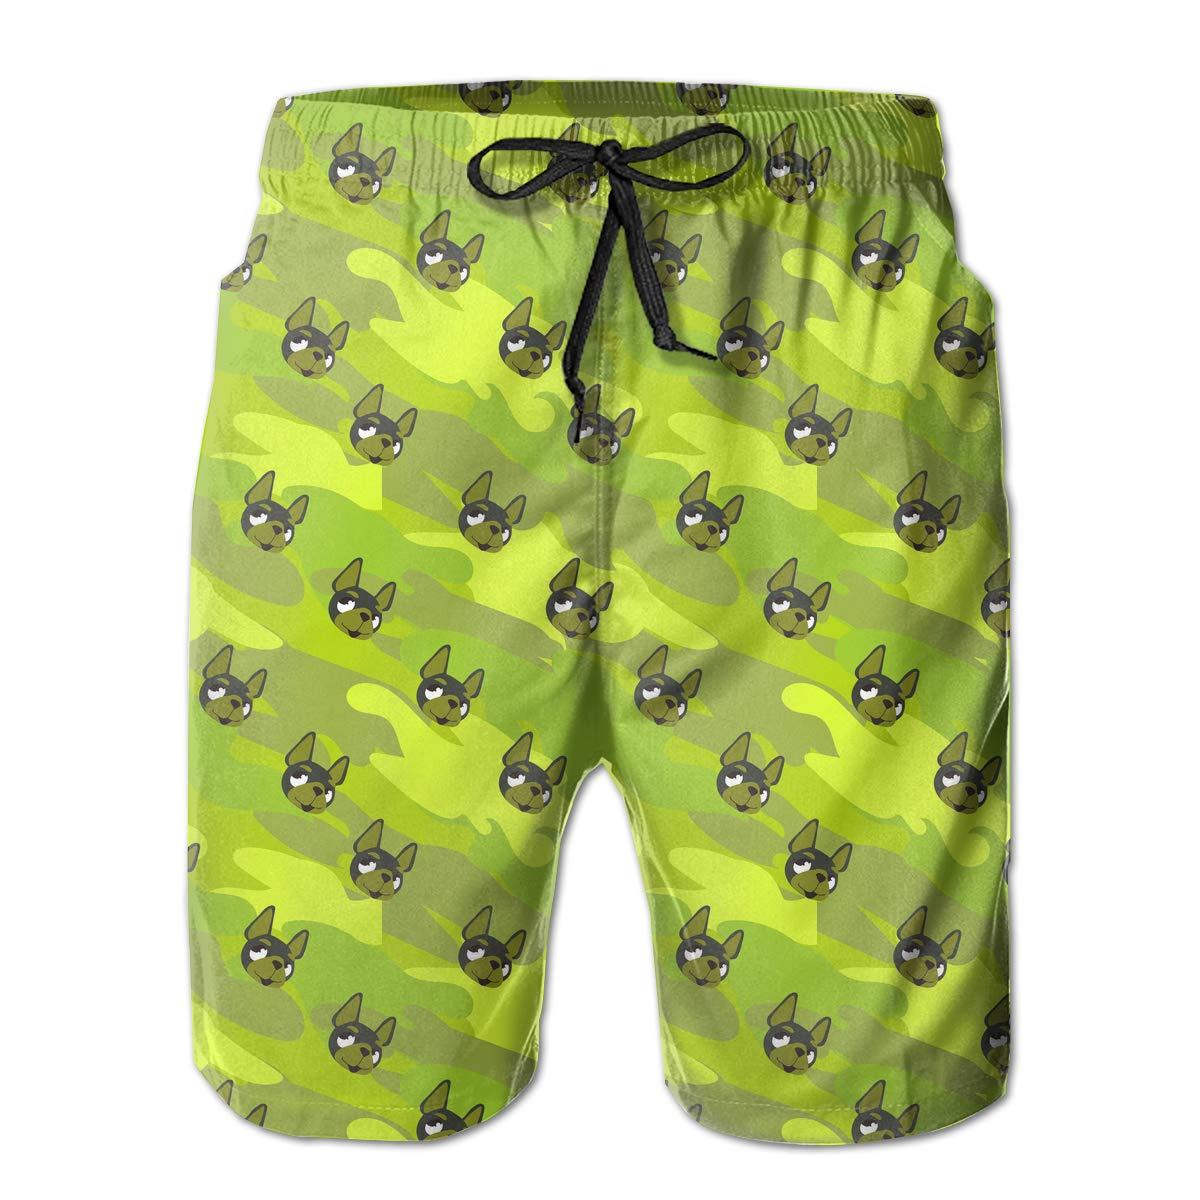 Dog Face On Camouflage Pattern Mens Beach Shorts Summer Casual Bathing Suit